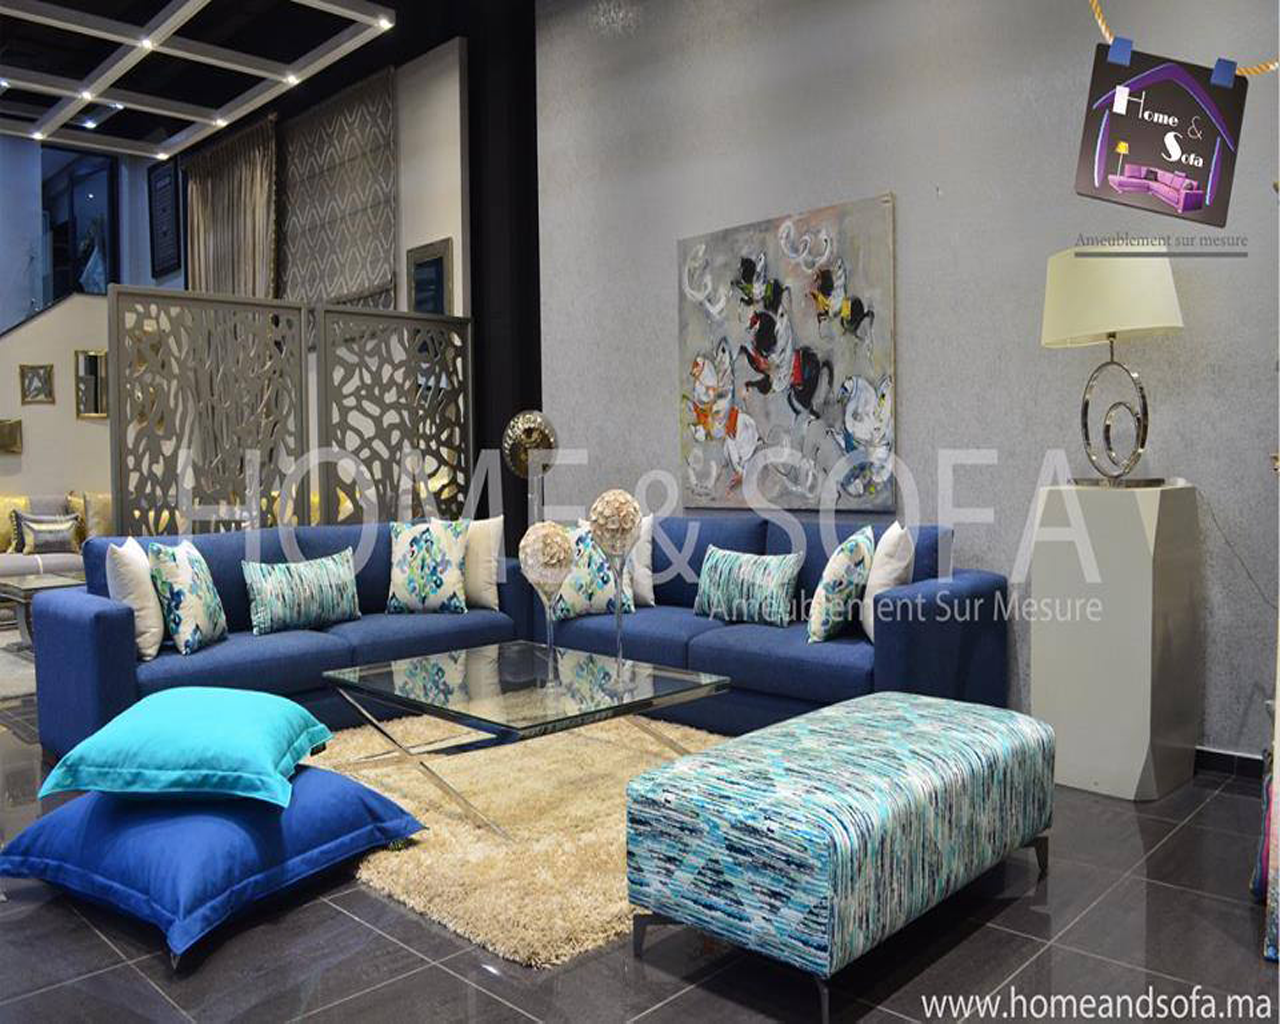 Salon Marocain Contemporain Salon Moderne Home And Sofa Salon Beldi Deco Salon